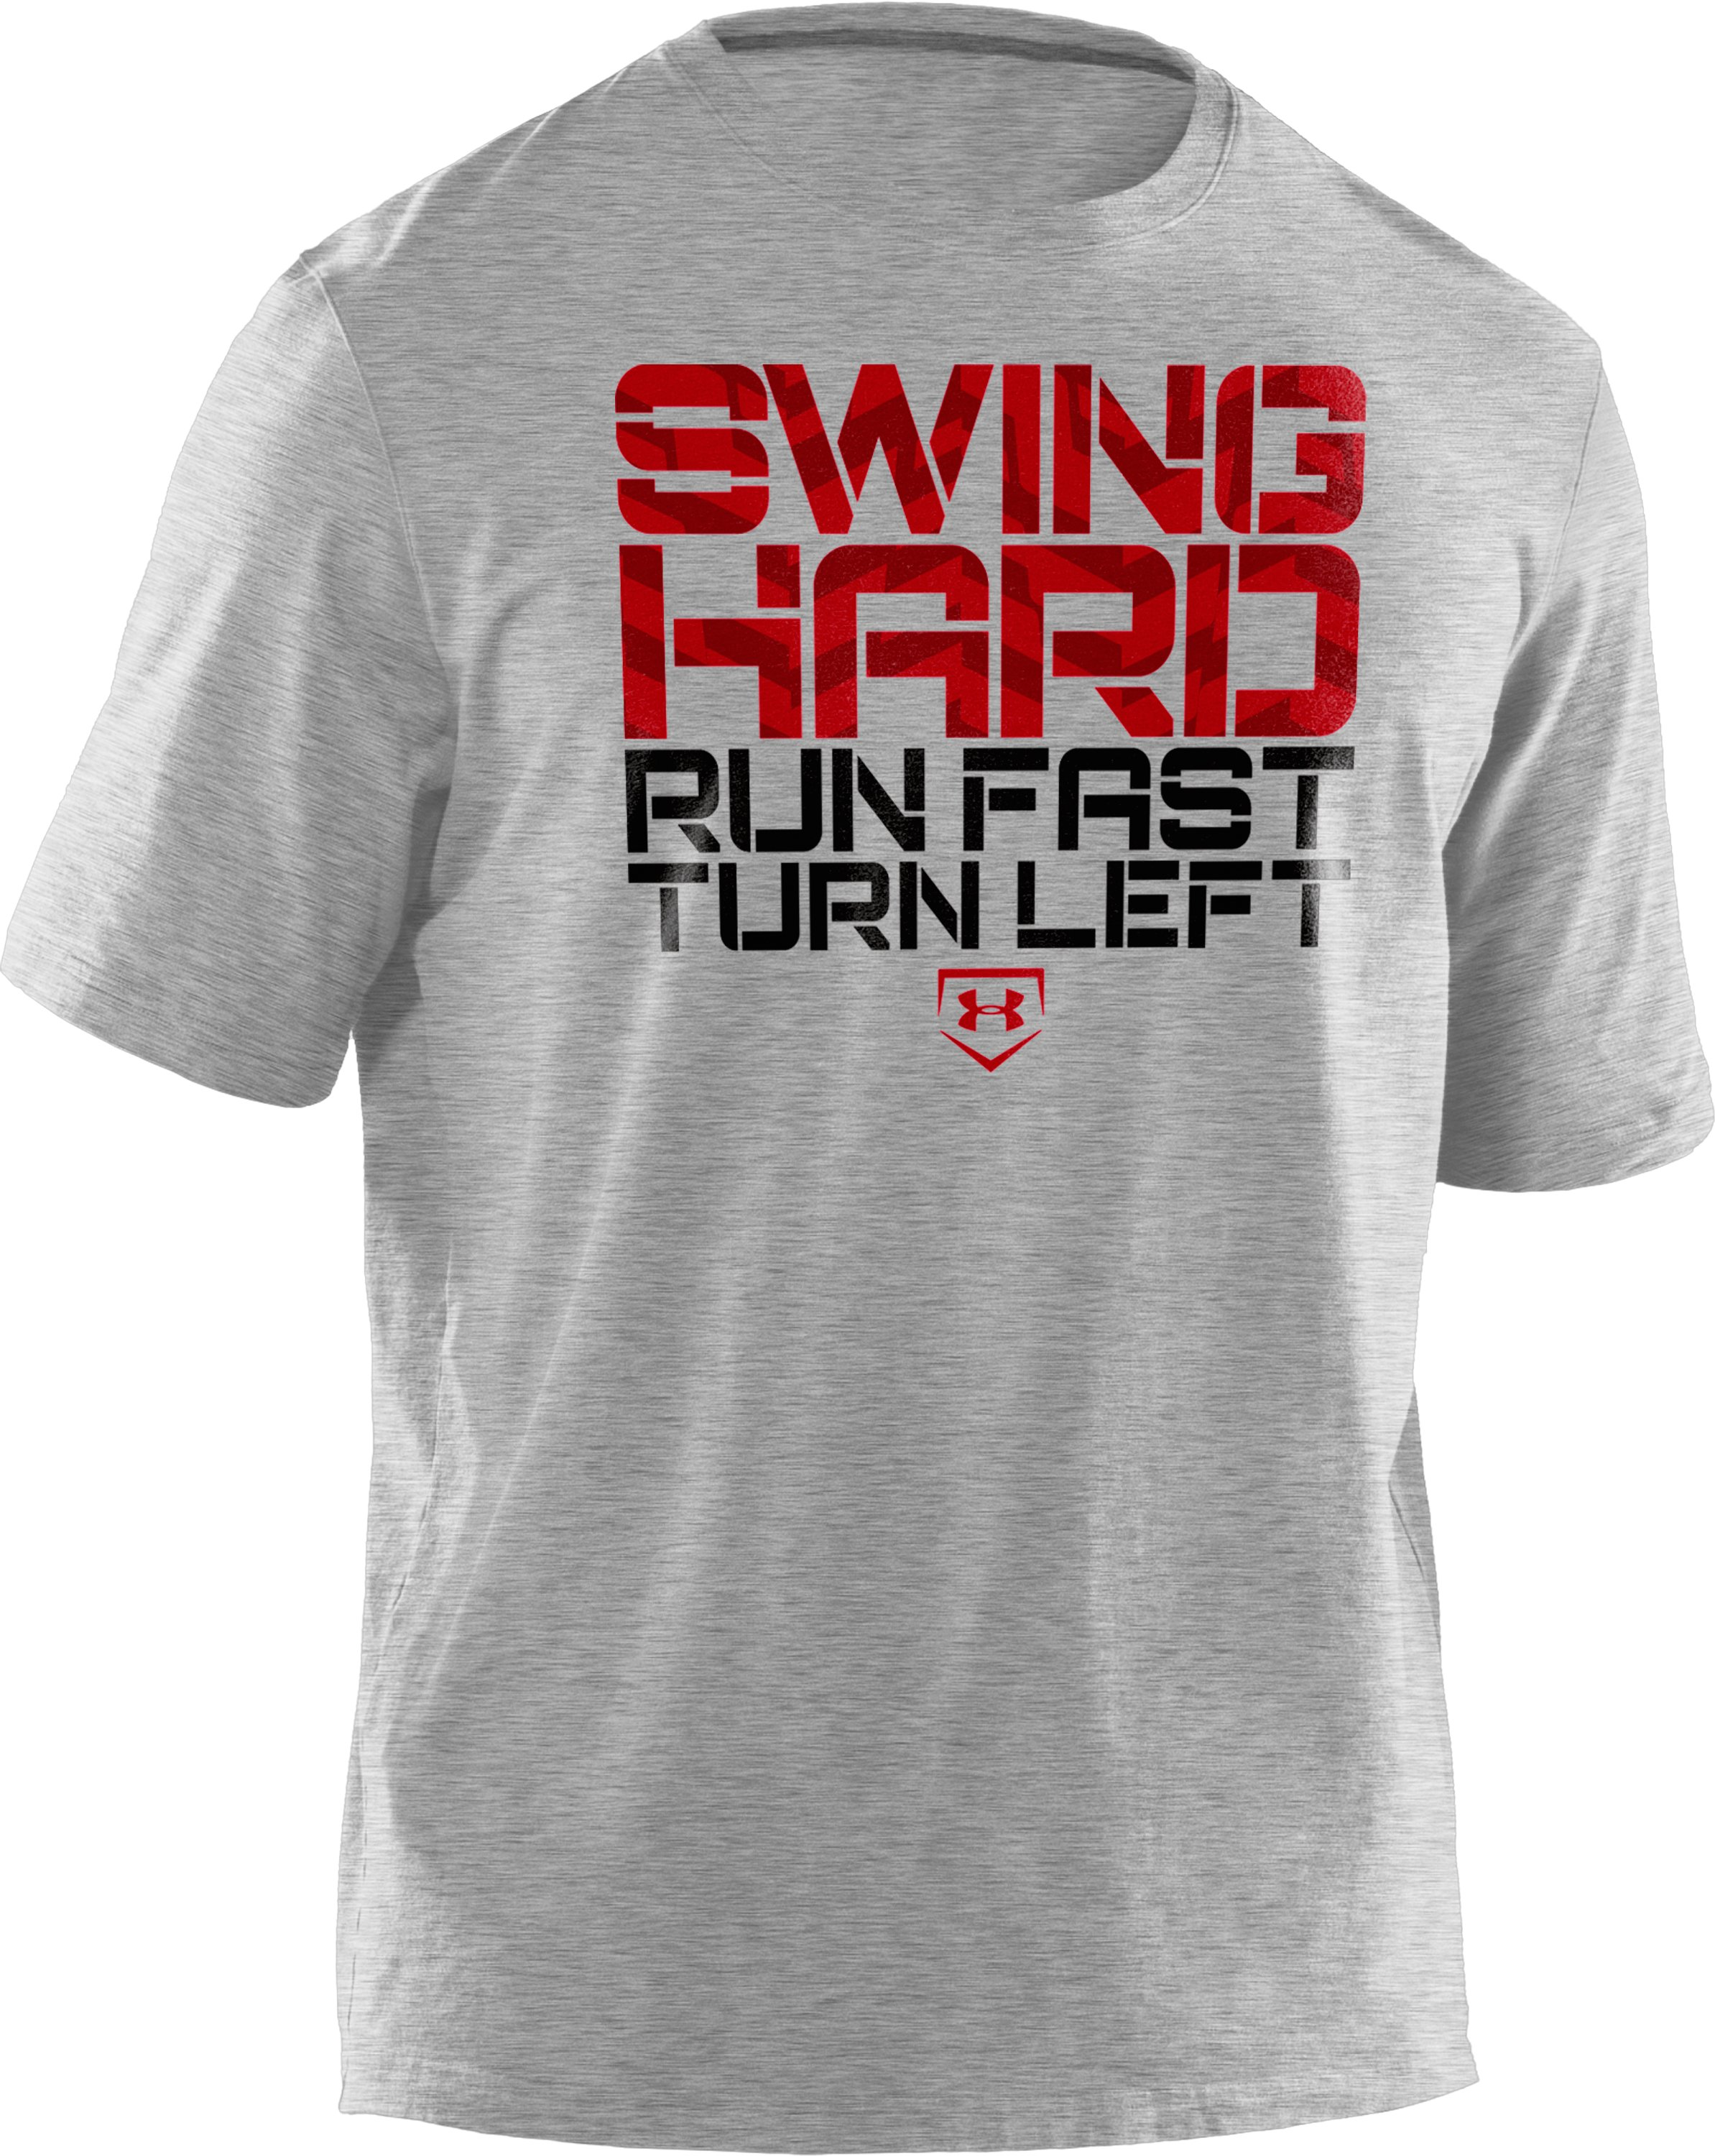 Boys' UA Swing Hard T-Shirt, True Gray Heather, zoomed image